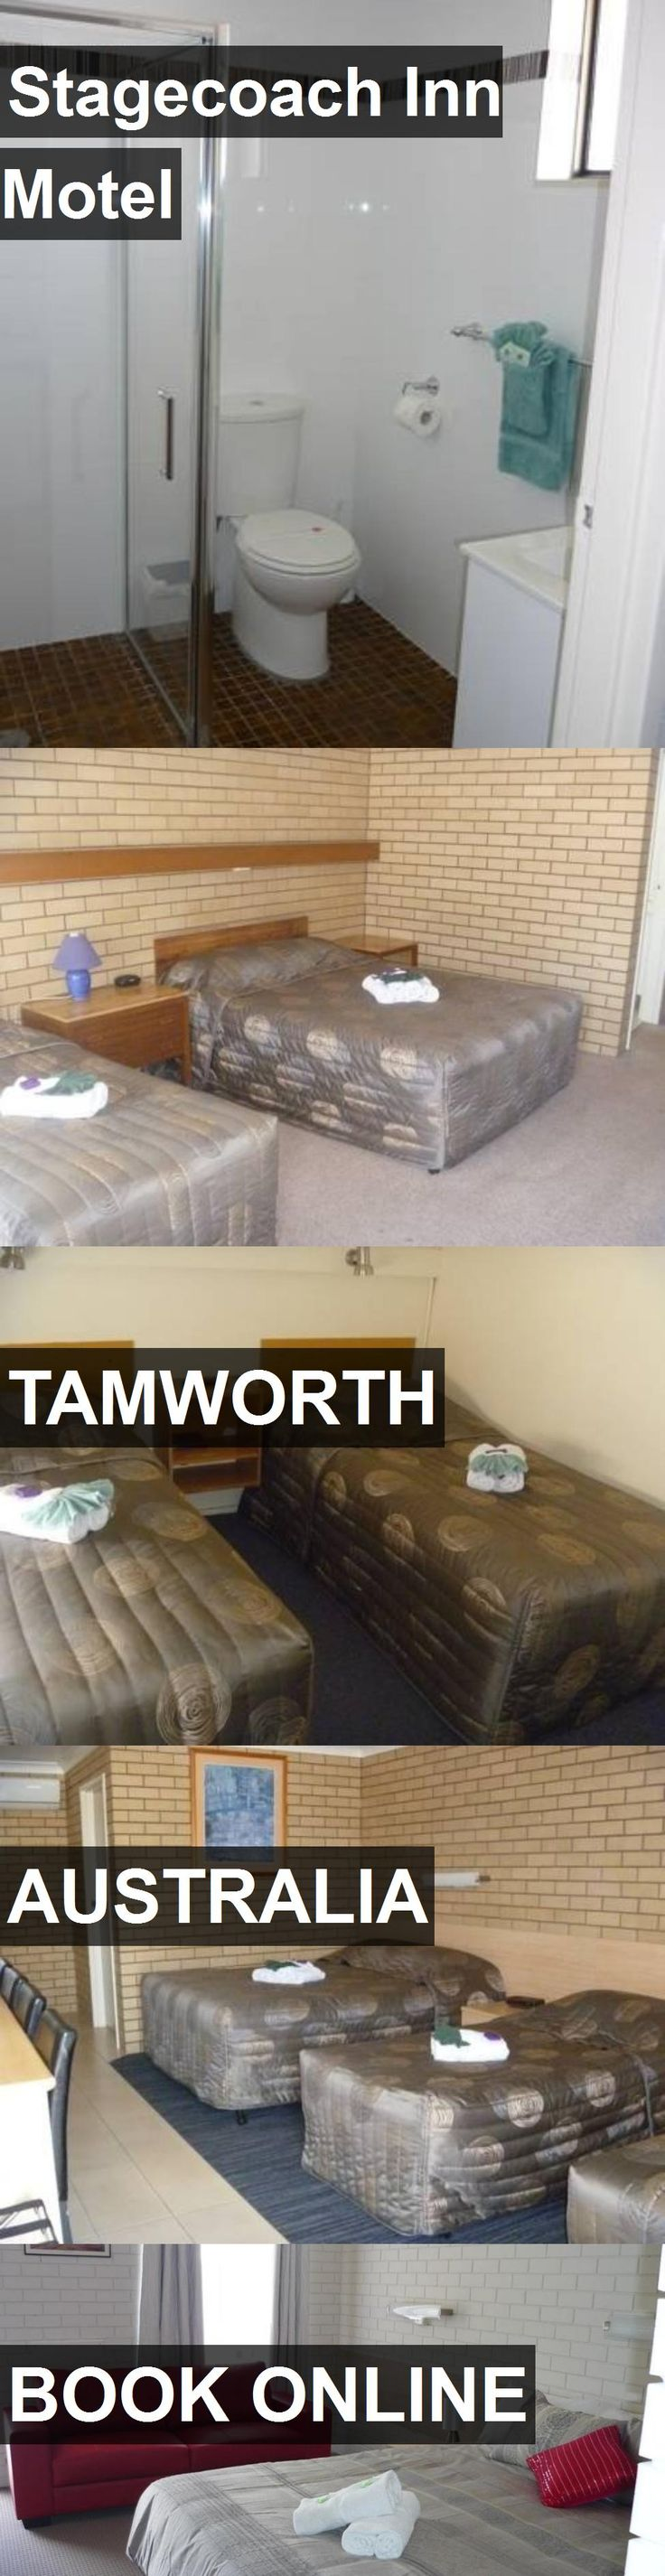 Hotel Stagecoach Inn Motel in Tamworth, Australia. For more information, photos, reviews and best prices please follow the link. #Australia #Tamworth #travel #vacation #hotel